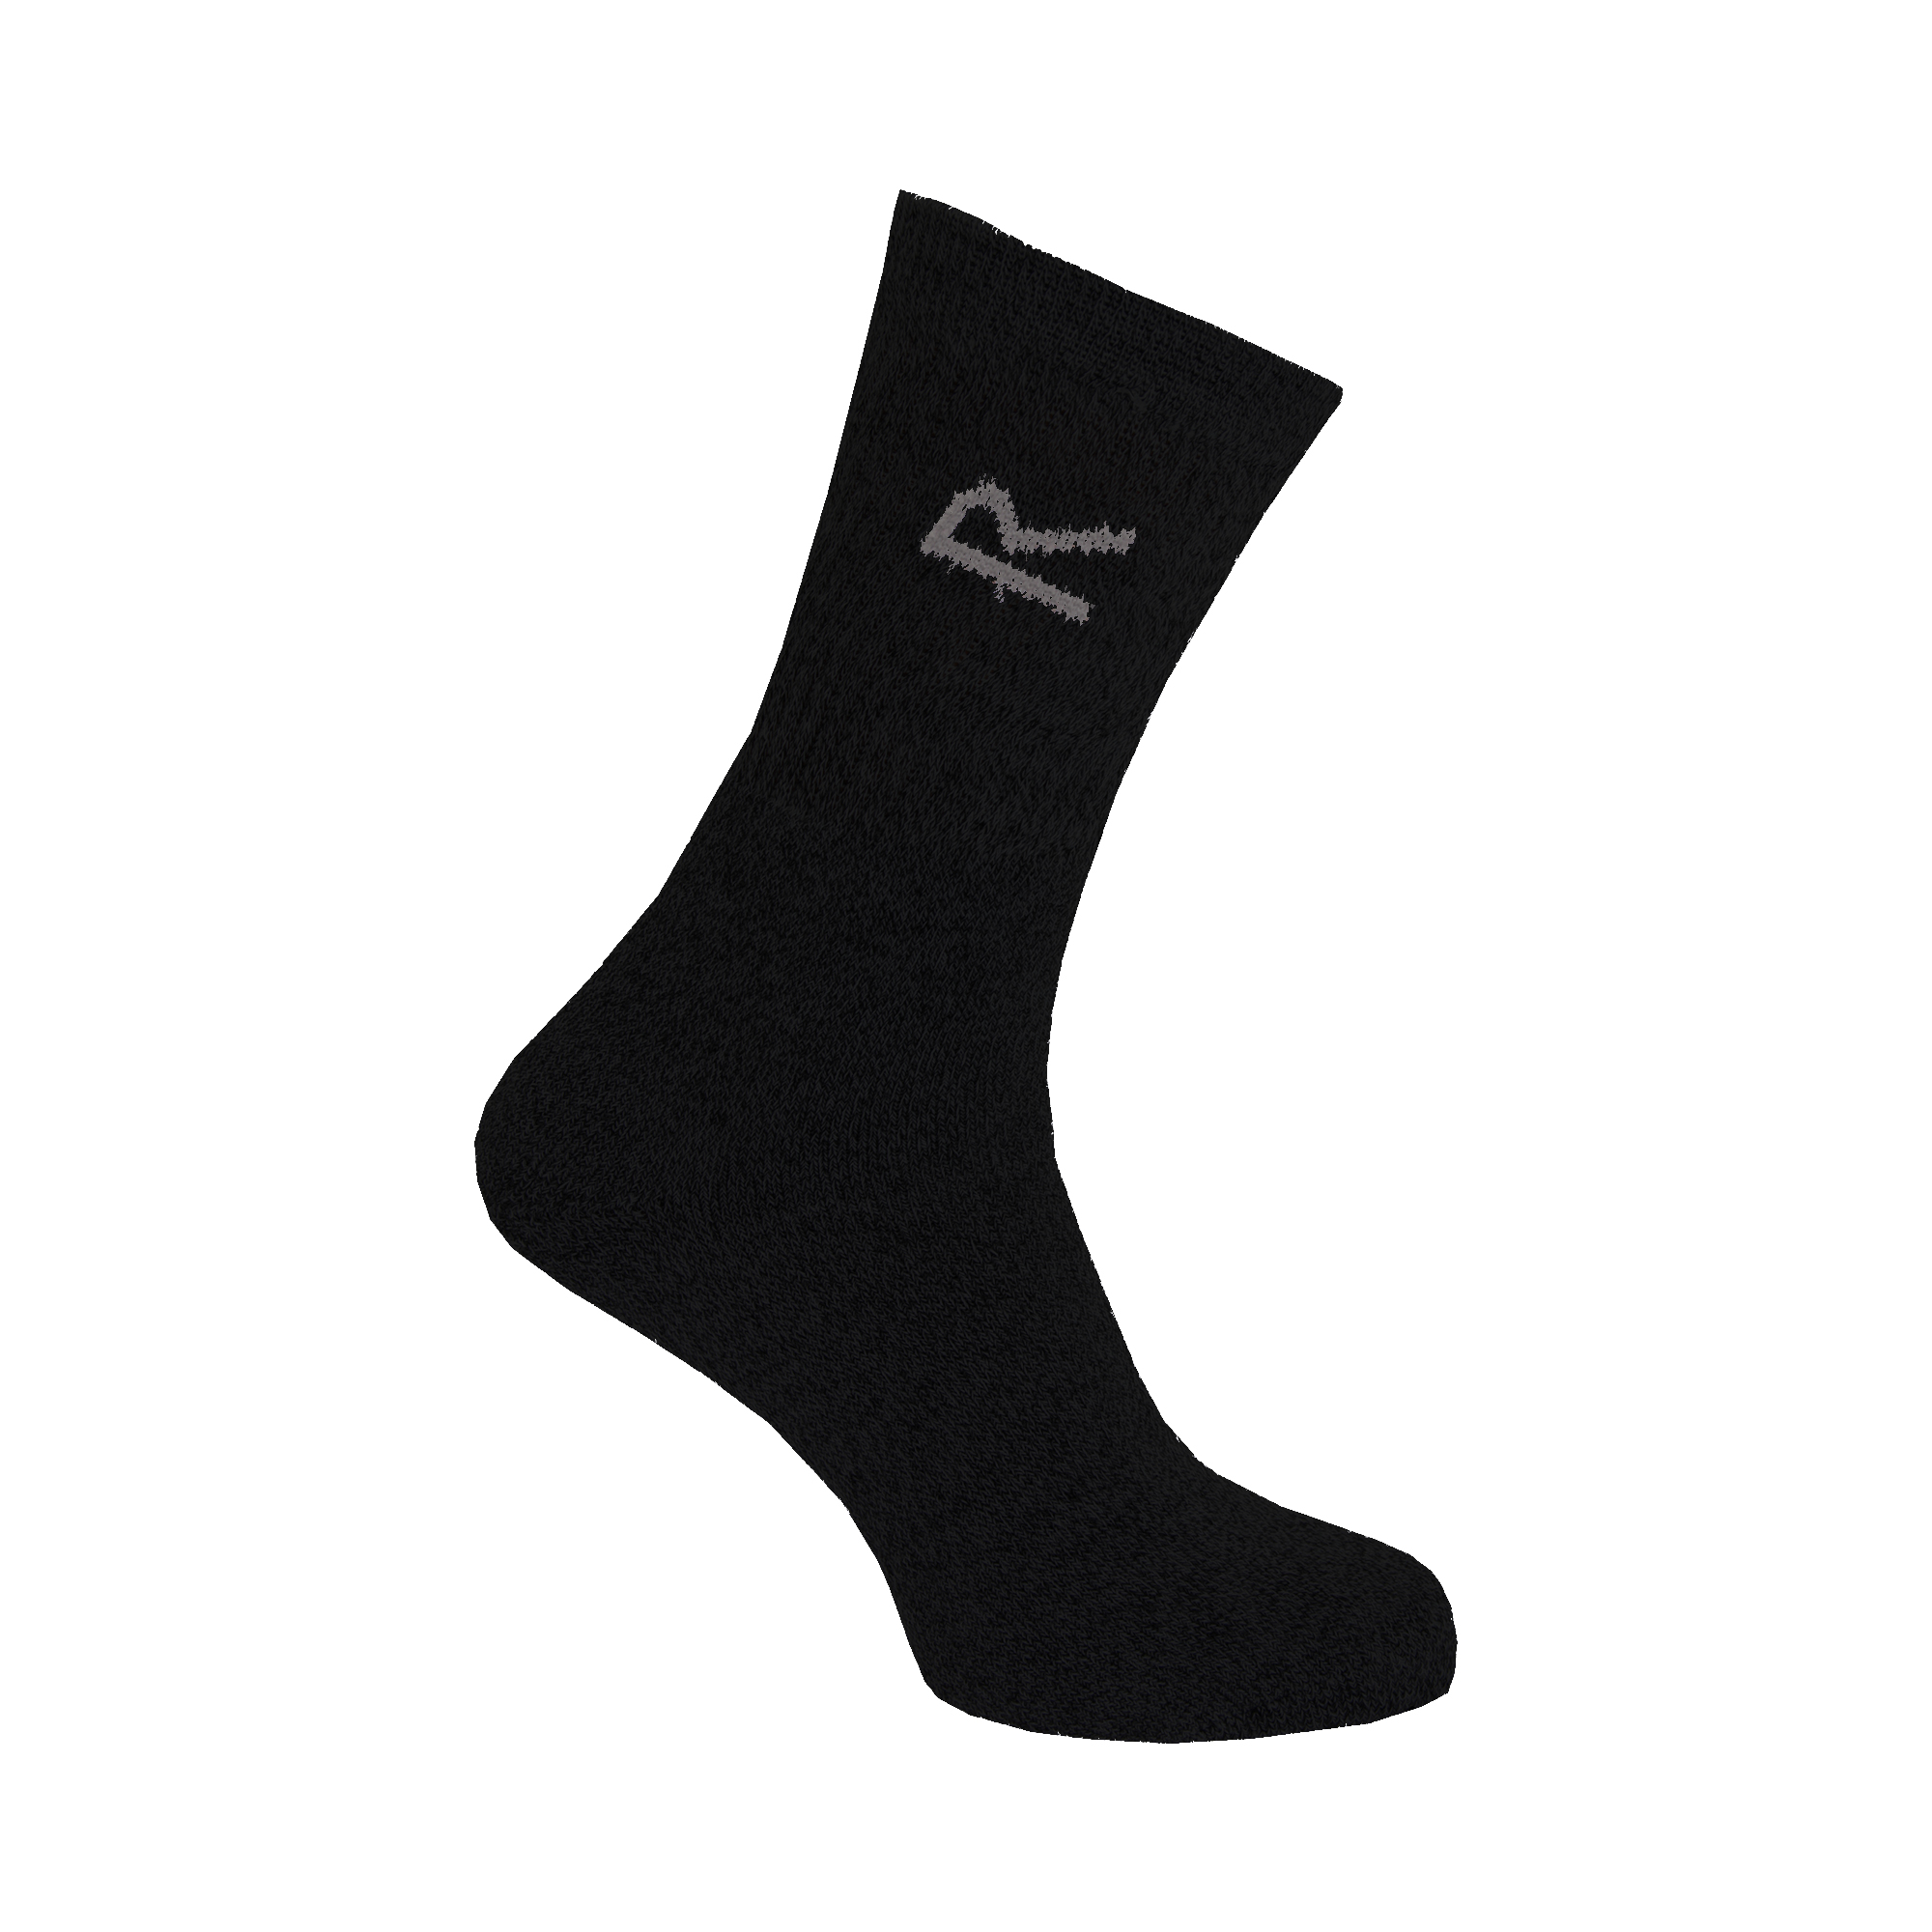 Regatta-Great-Outdoors-Mens-Cotton-Rich-Casual-Socks-Pack-Of-3-RG786 thumbnail 6